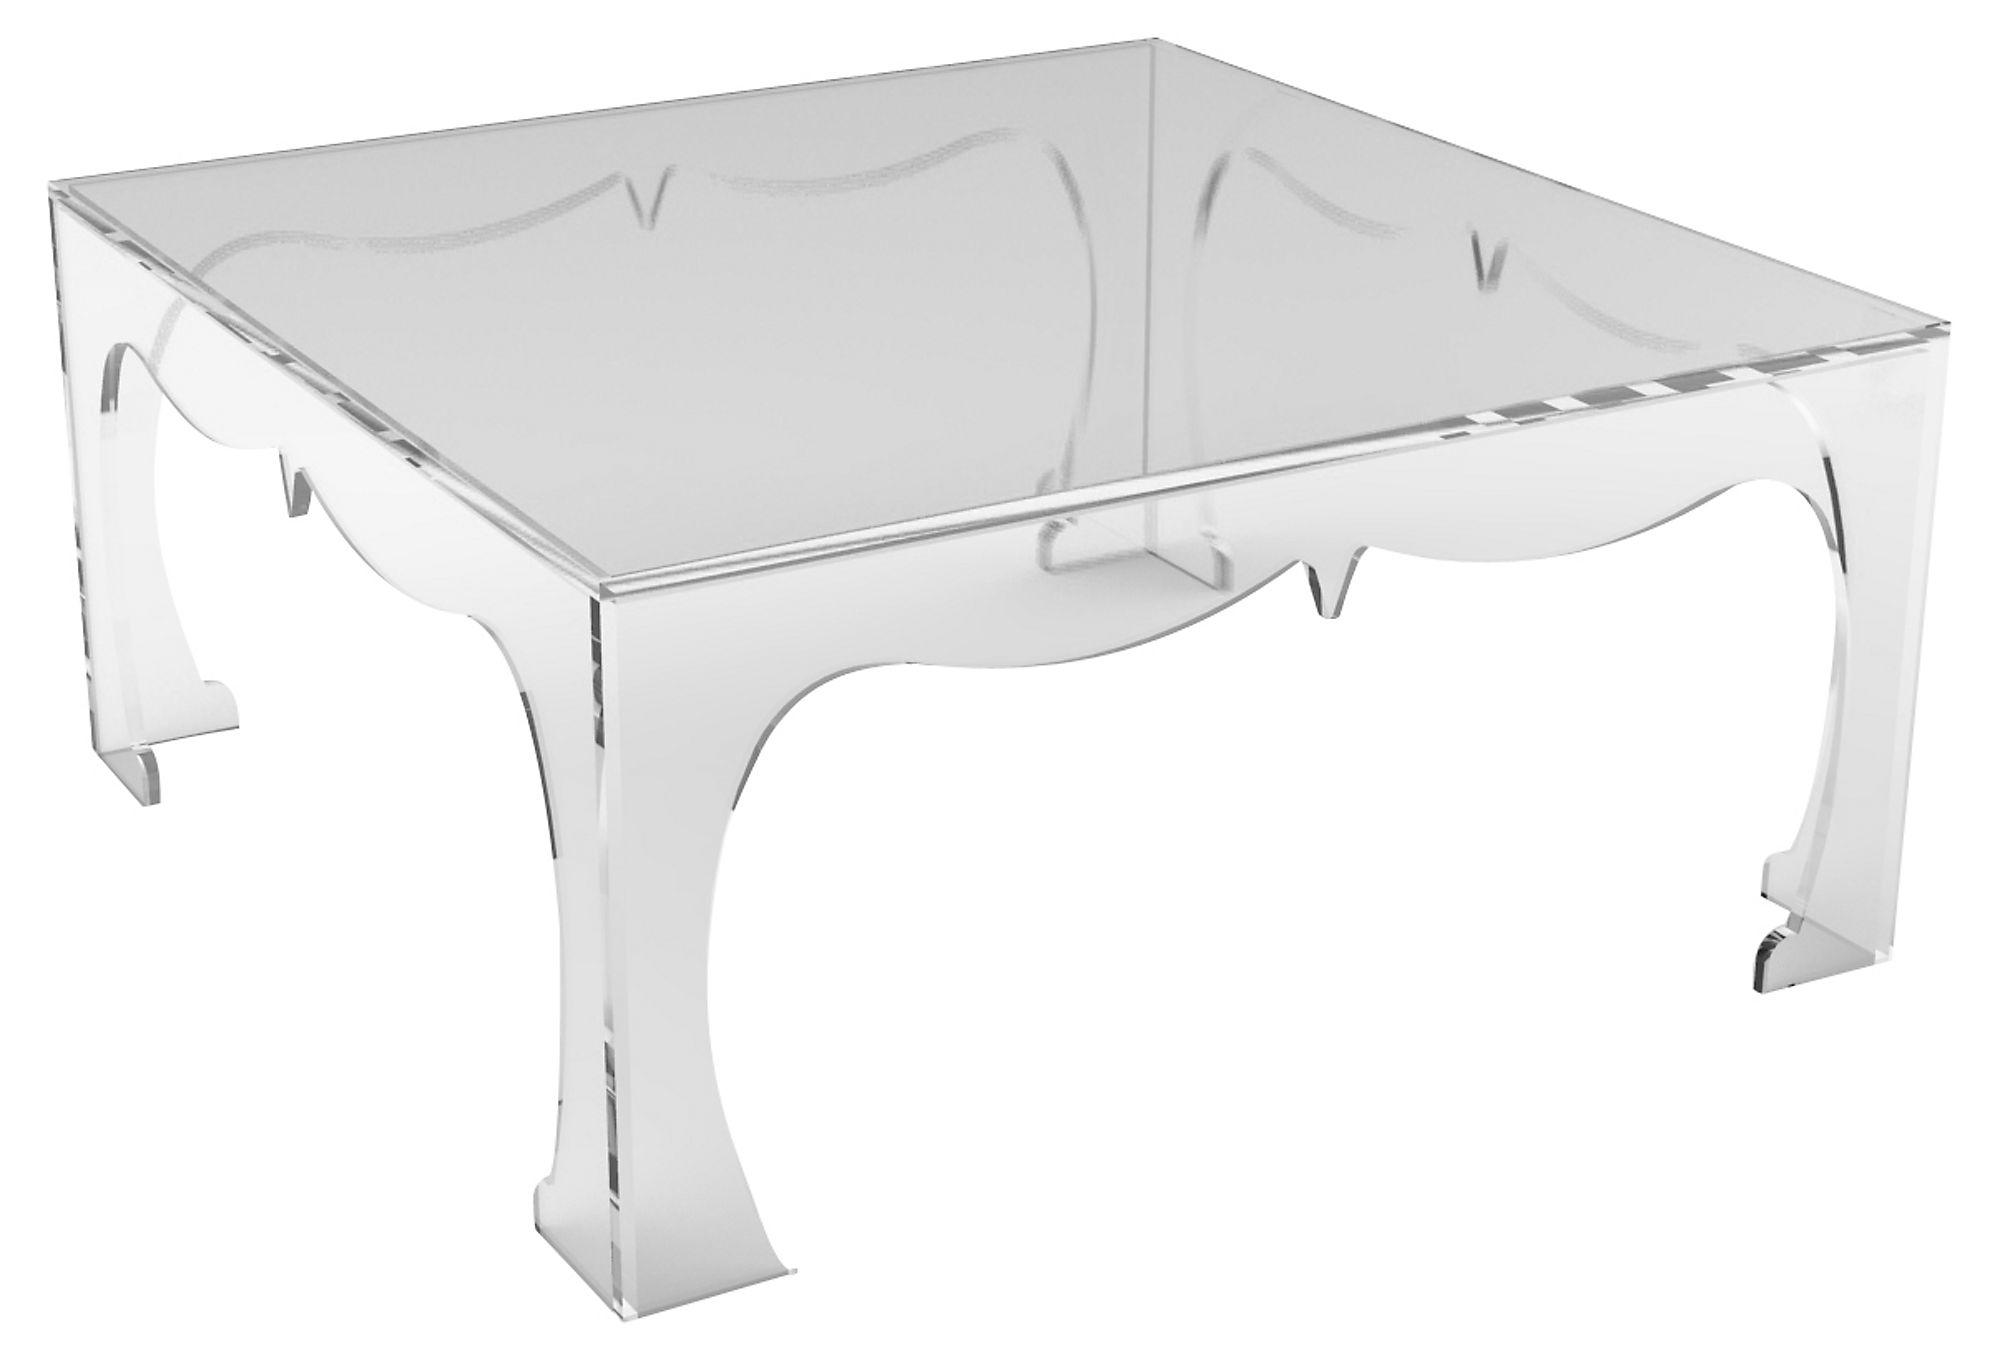 Agra acrylic square coffee table clear from one kings lane for Clear lucite acrylic coffee table